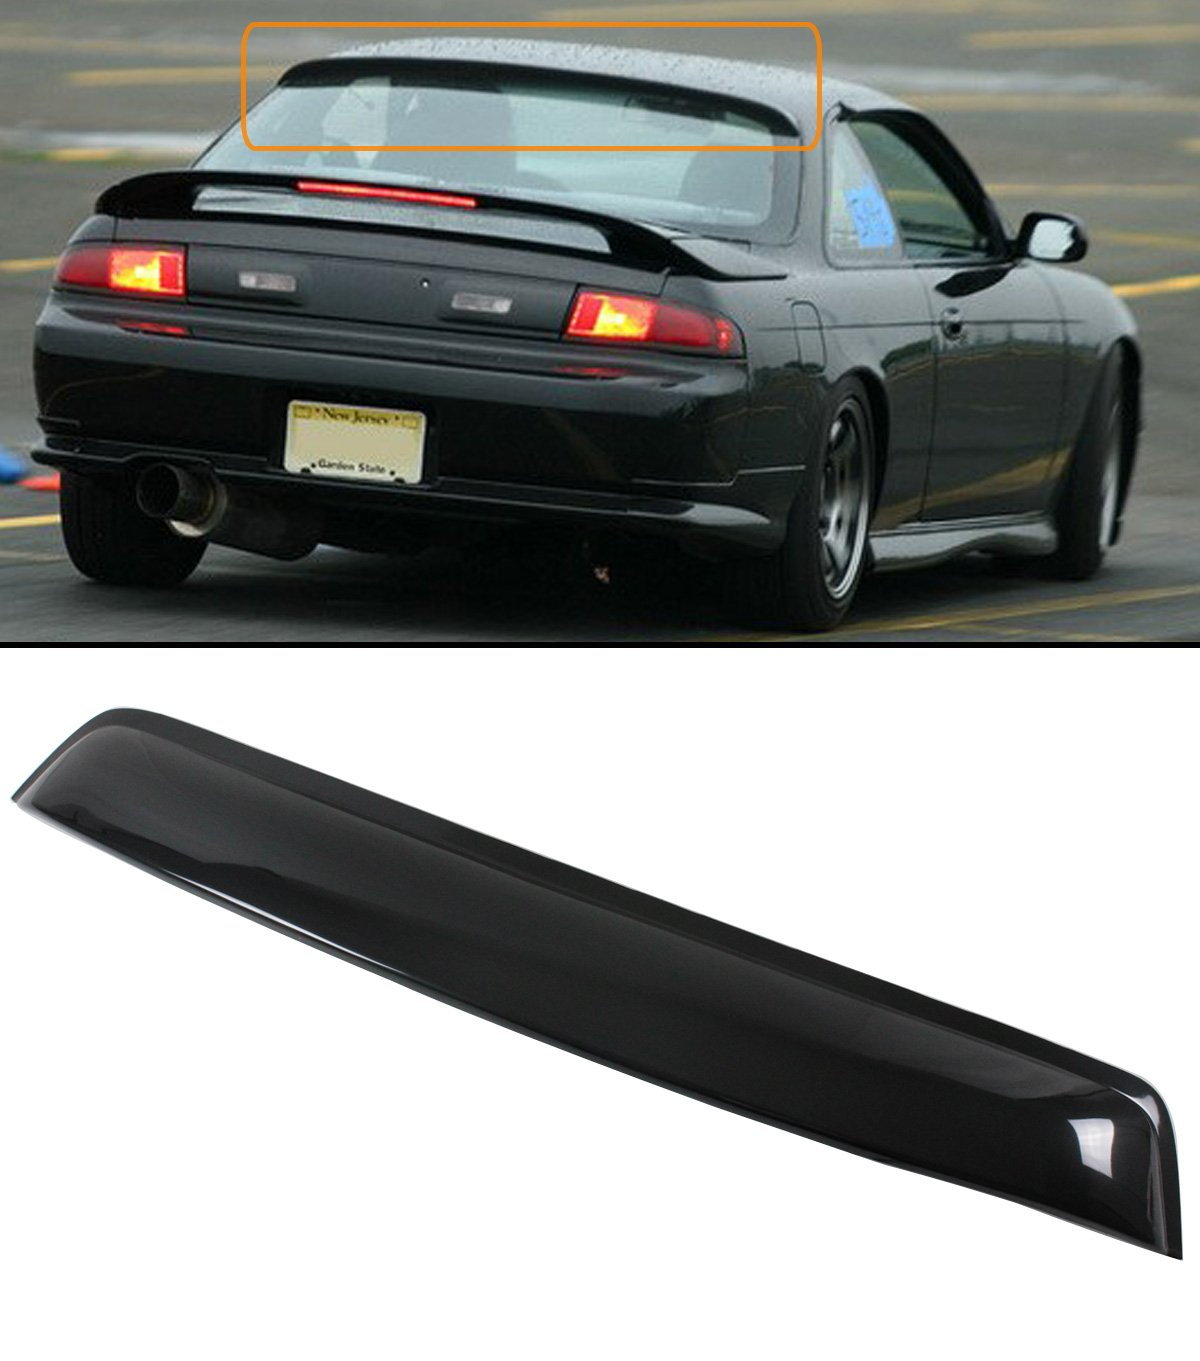 Cuztom Tuning Fit For 1995 1998 Nissan 240sx S14 2 Door Sale Coupe Rear Window Roof Visor Spoiler Shade Automotive